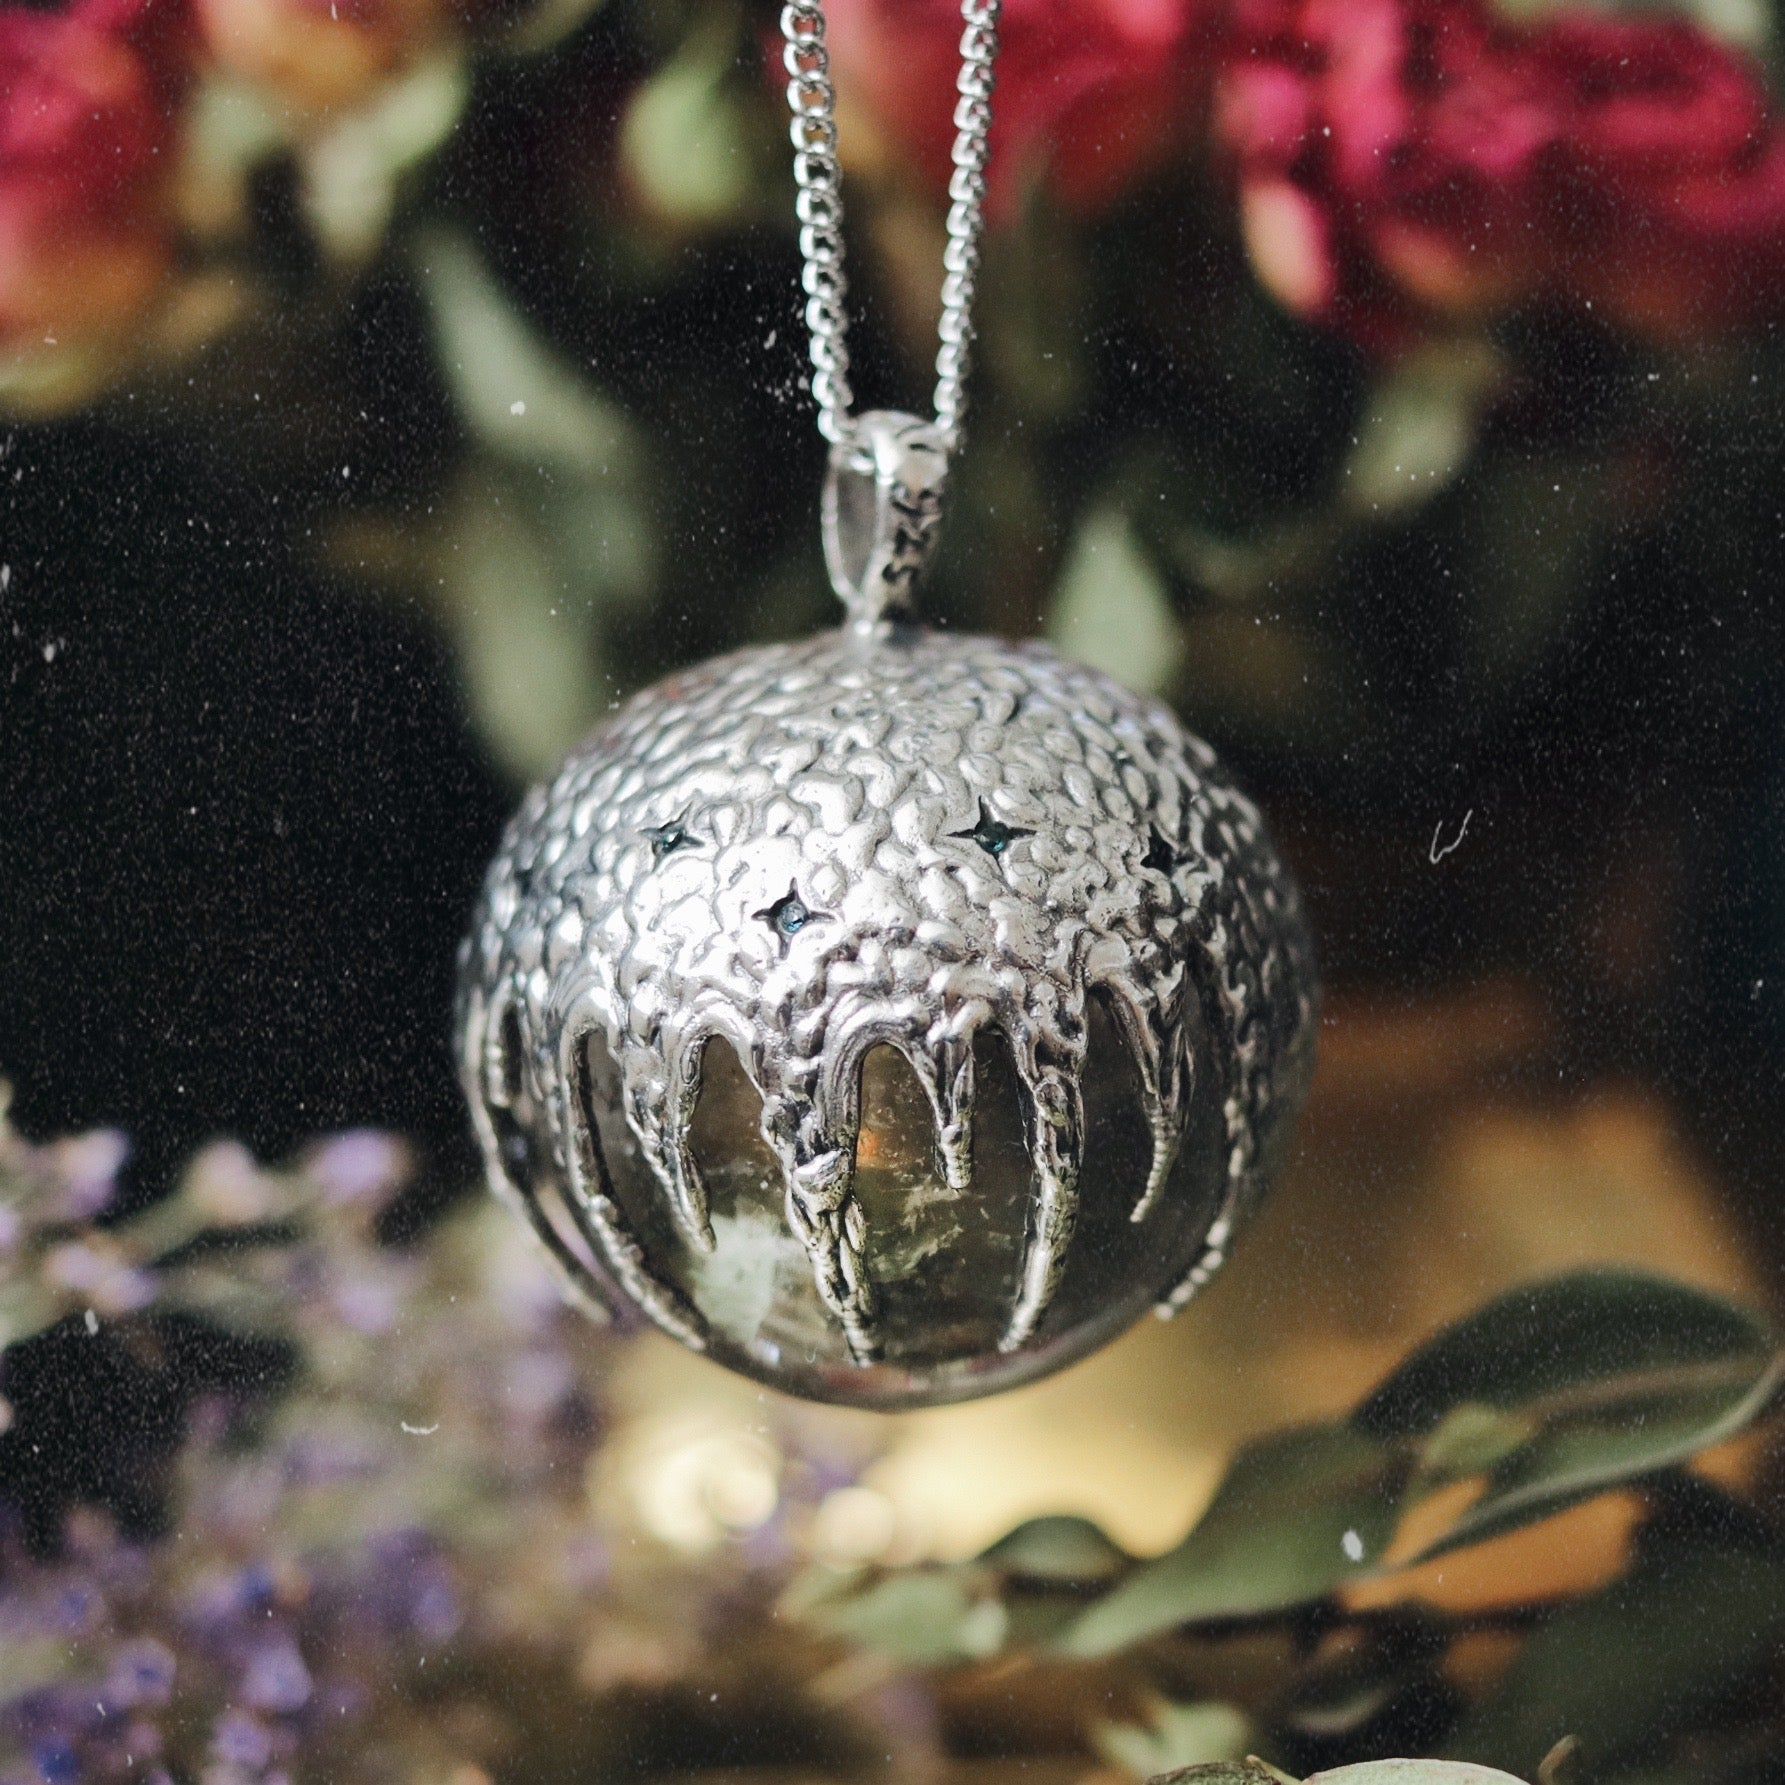 Victory Clear Quartz Crystal Ball Necklace #16